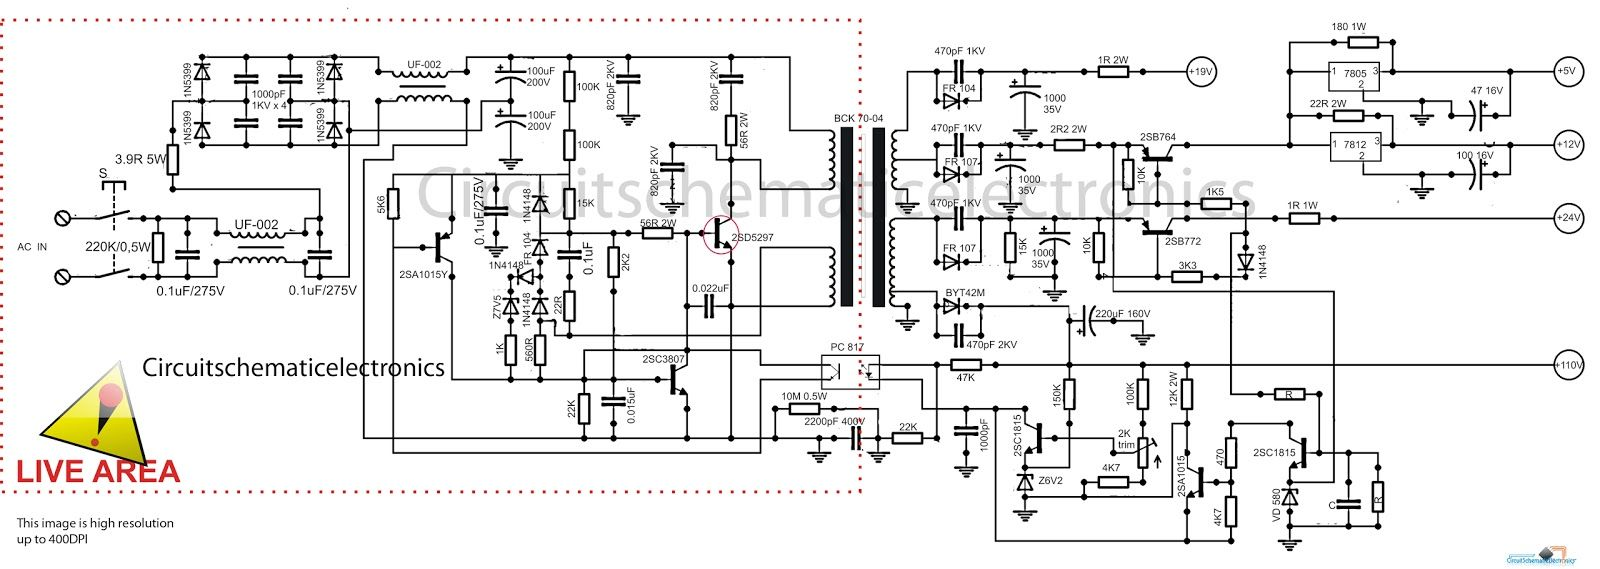 Switching Power Suplly For Color Television Circuit About Wiring Diagram Of Switched Schematic